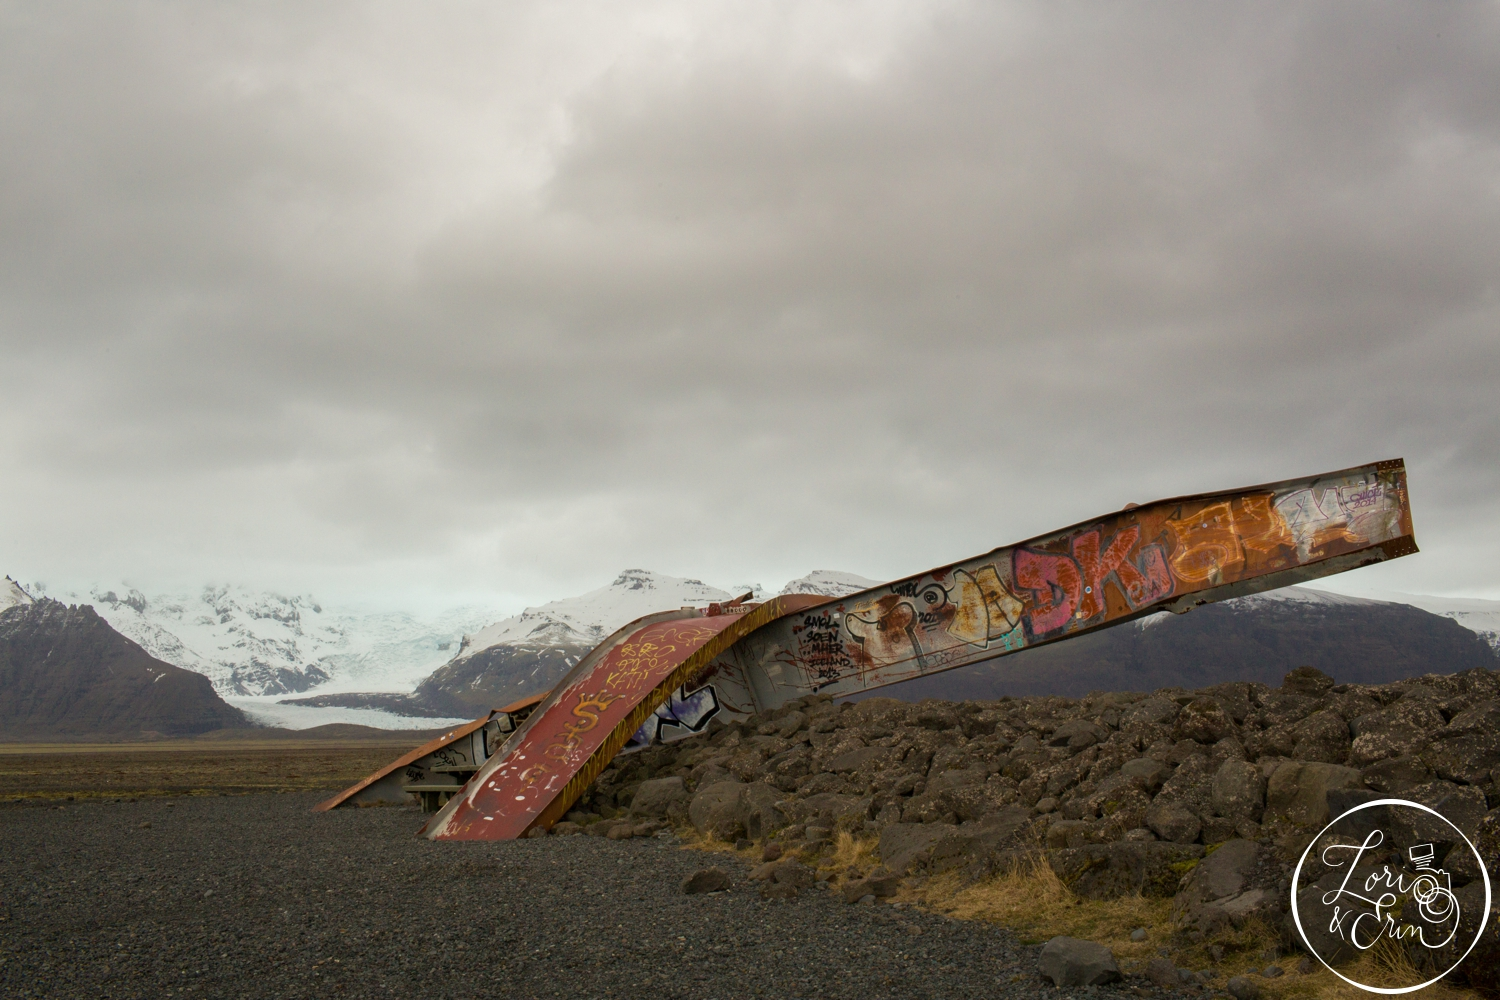 Remnants of a bridge with a glacier in the background